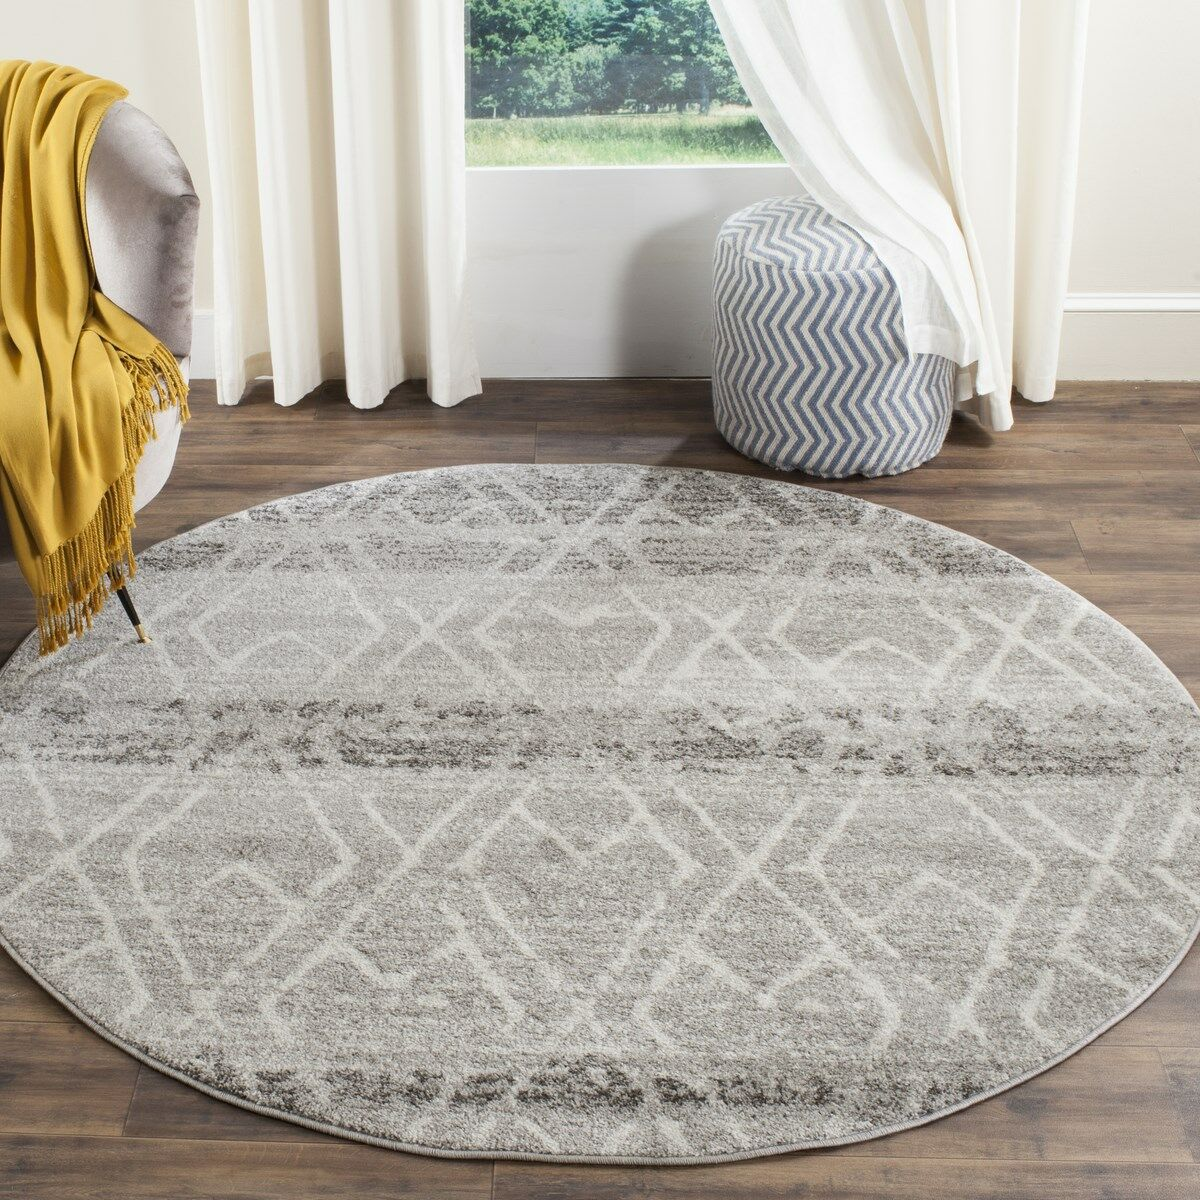 Seaport Area Rug Rug Size: Round 6'